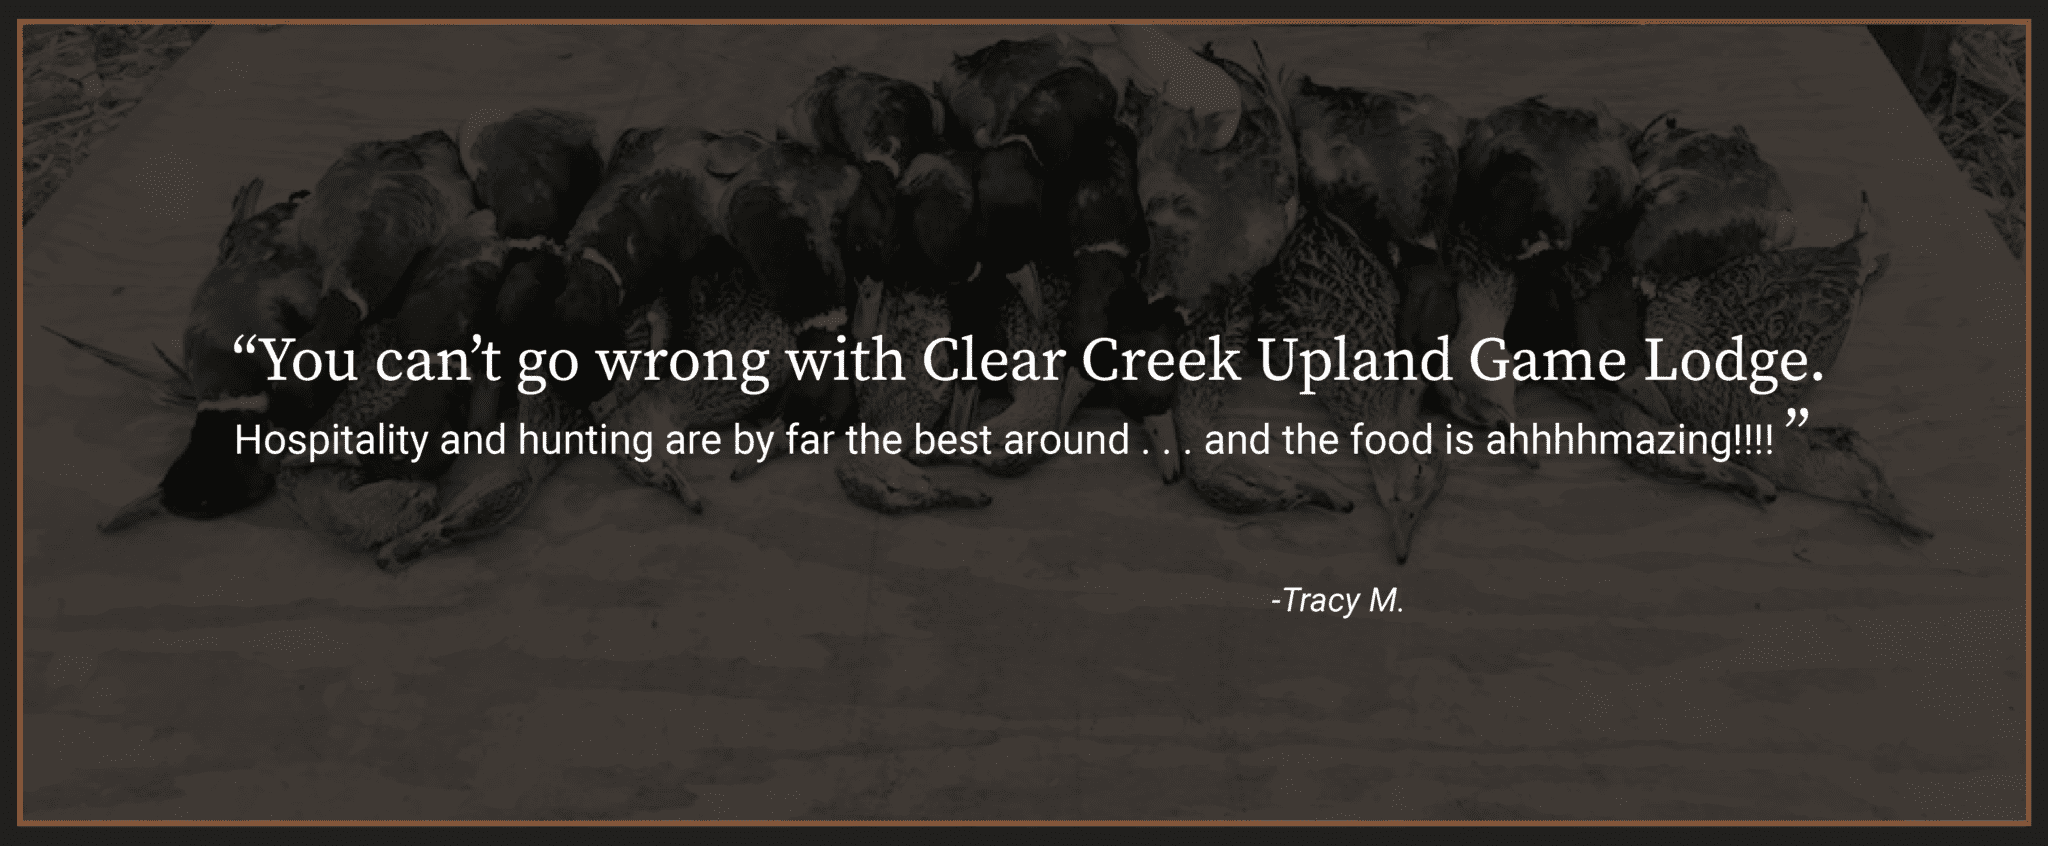 Hospitality and hunting are by far the best around. You can't go wrong with Clear Creek Upland Game Lodge.